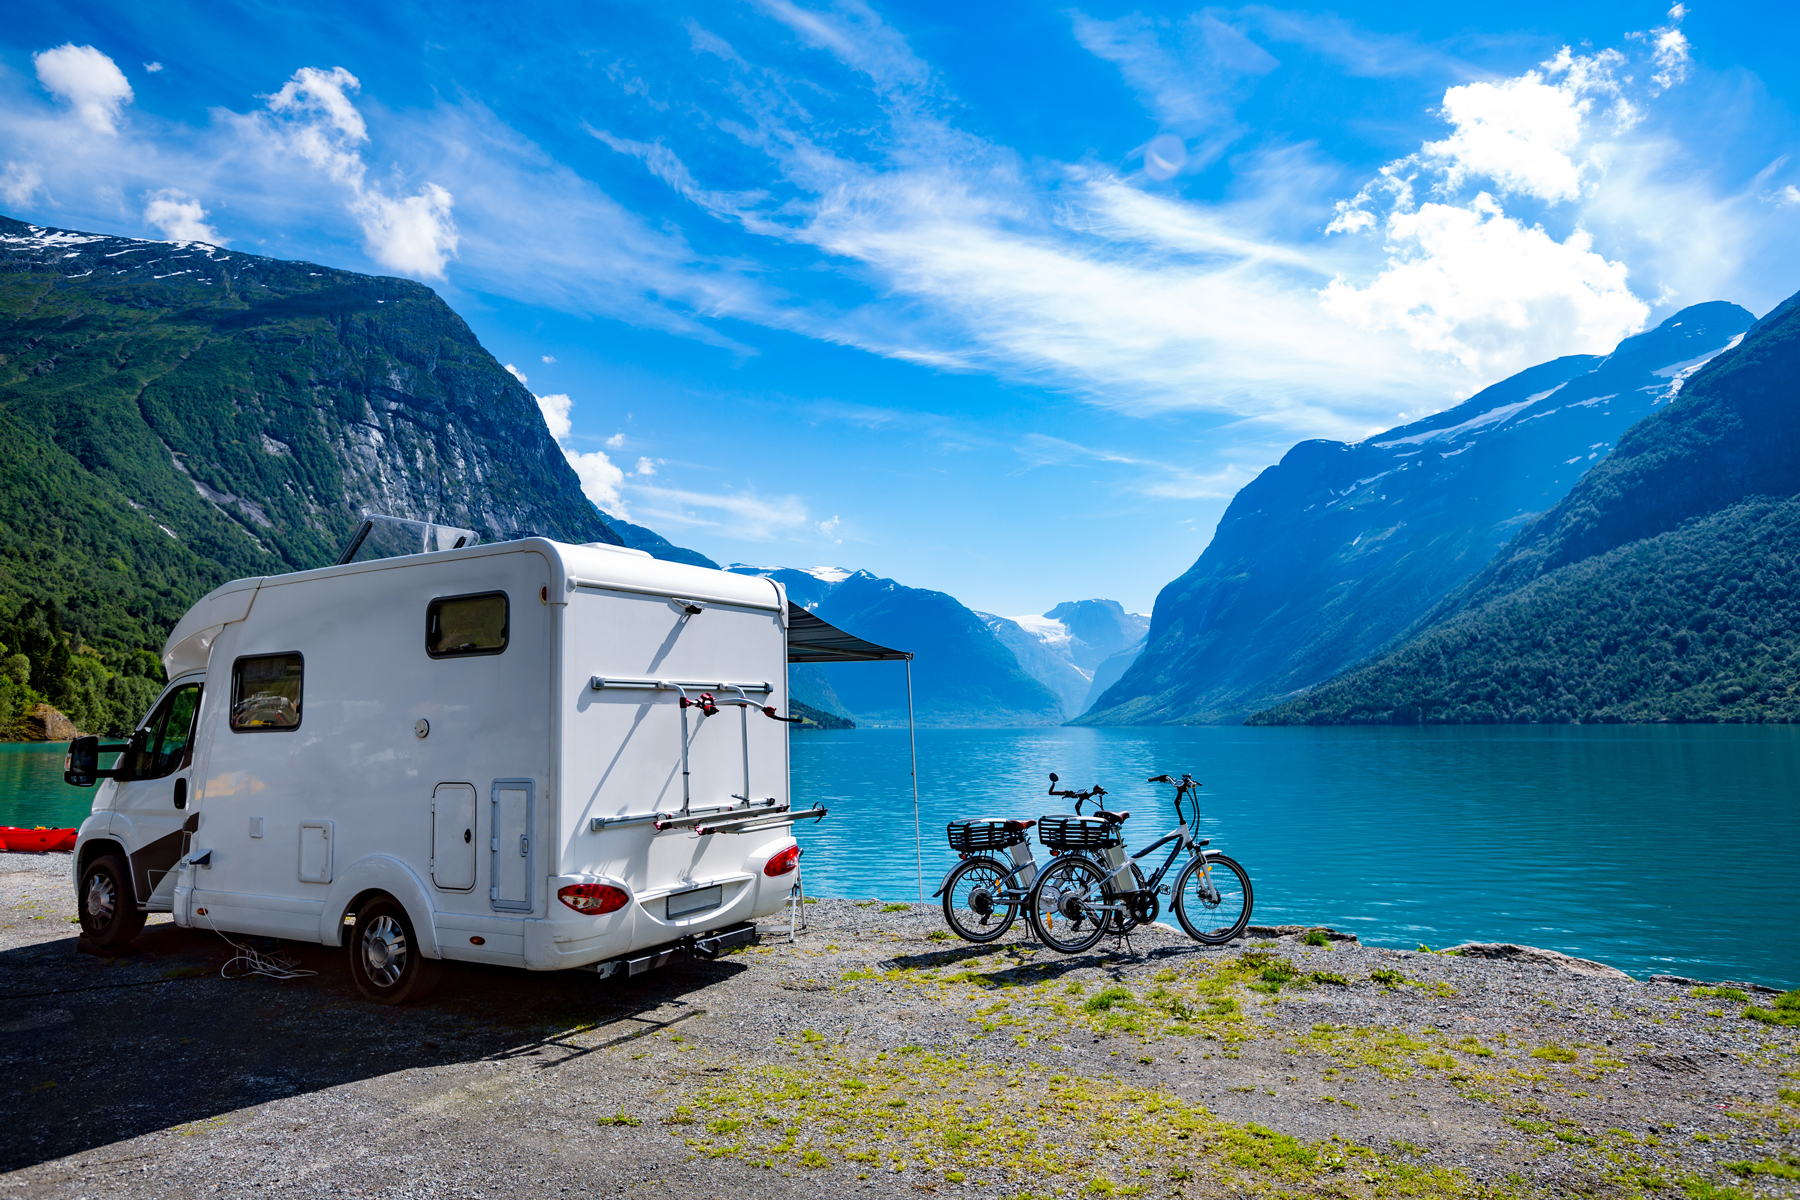 A motorhome parked on the edge of a blue lake in a mountainous region with bikes outside of the motorhome